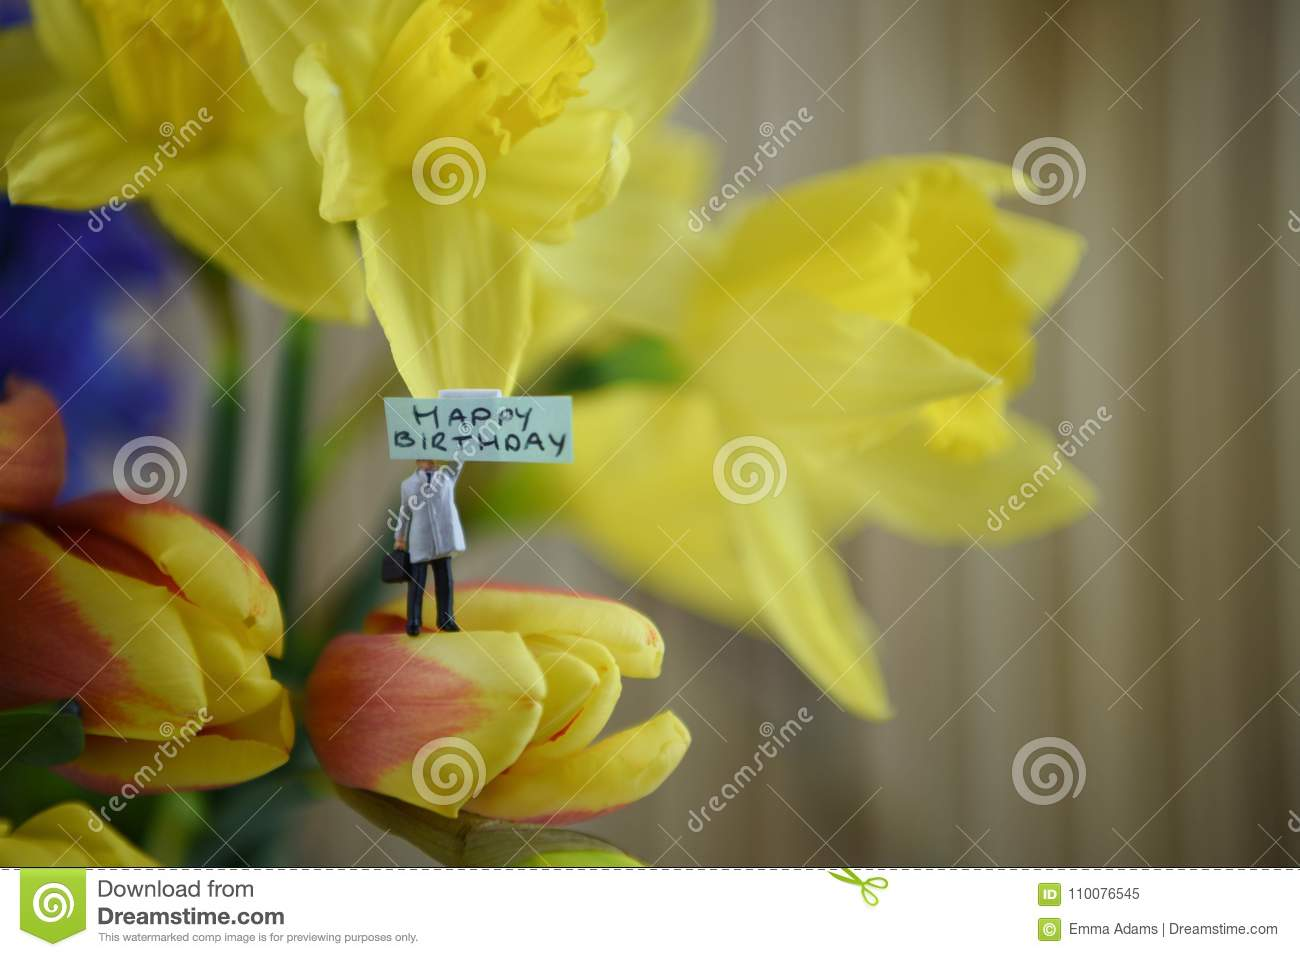 Spring Flowers Of Daffodils And Tulips With Words Or Text For Happy